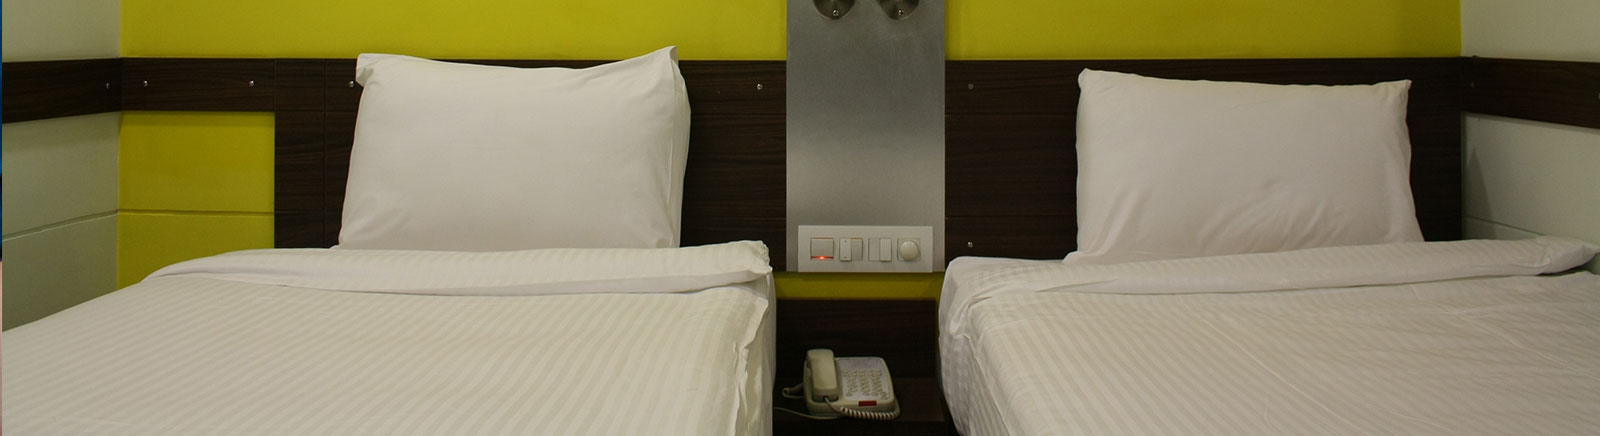 Rooms of Ginger Faridabad